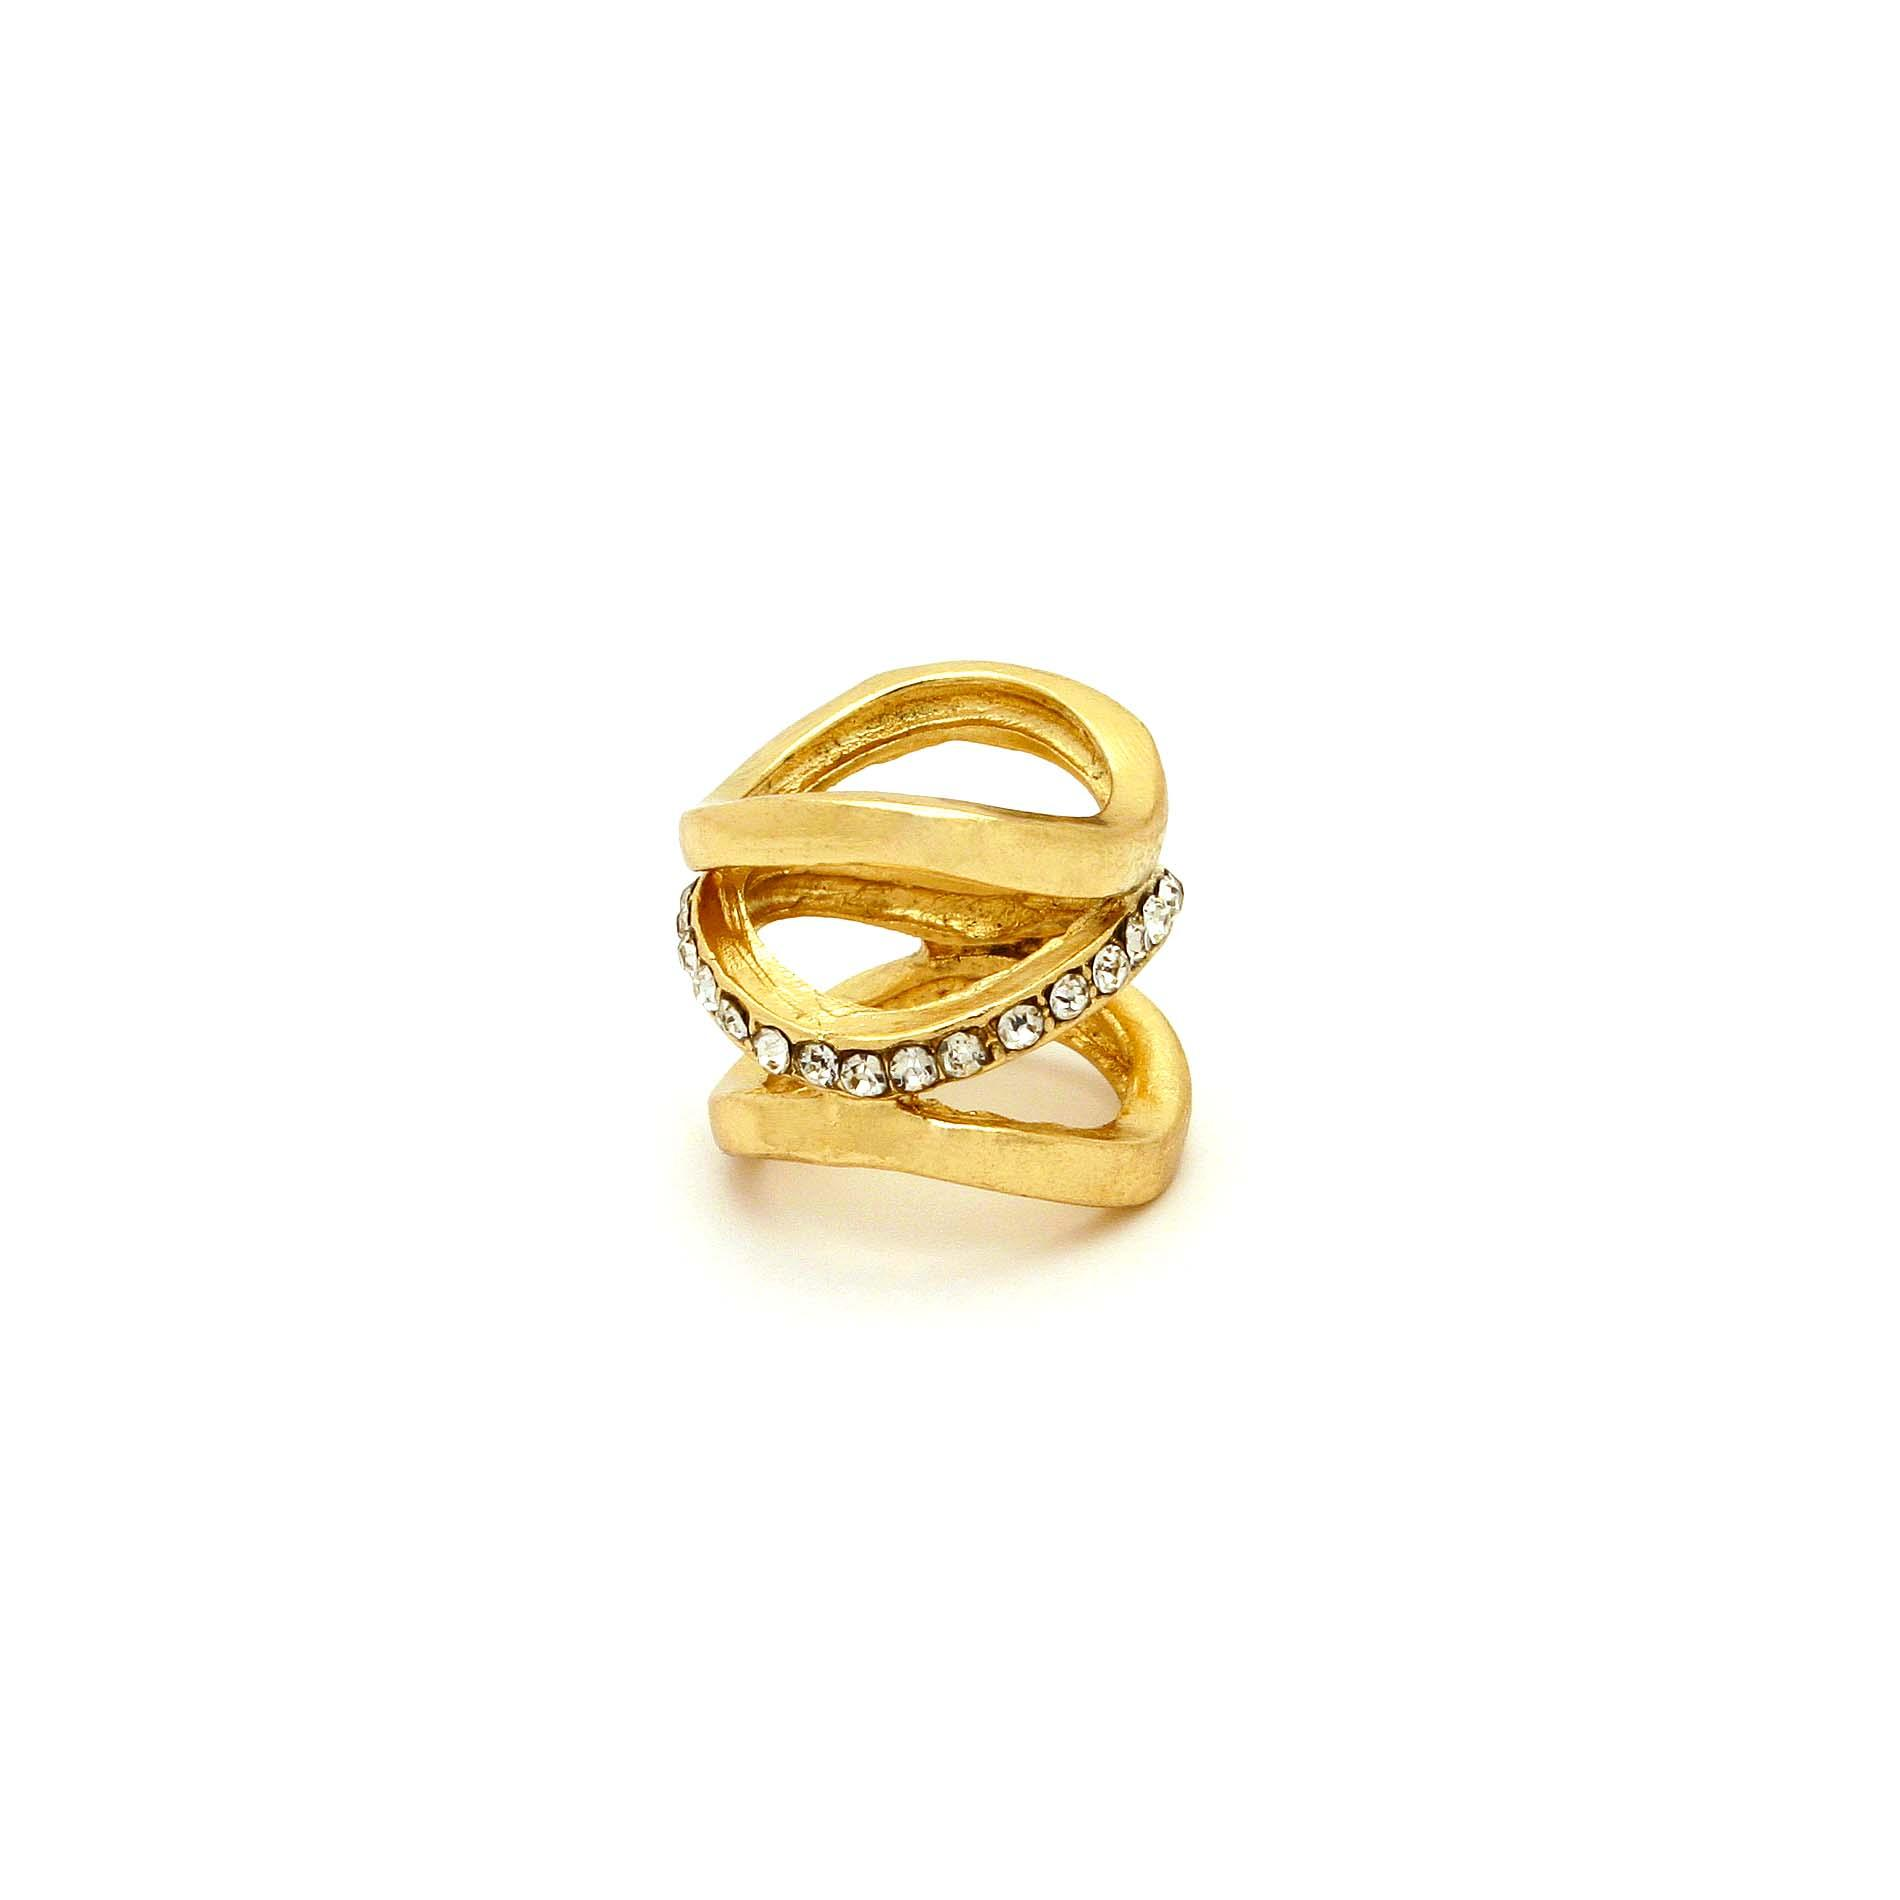 Attention Women's Goldtone & Rhinestone Cutout Ring